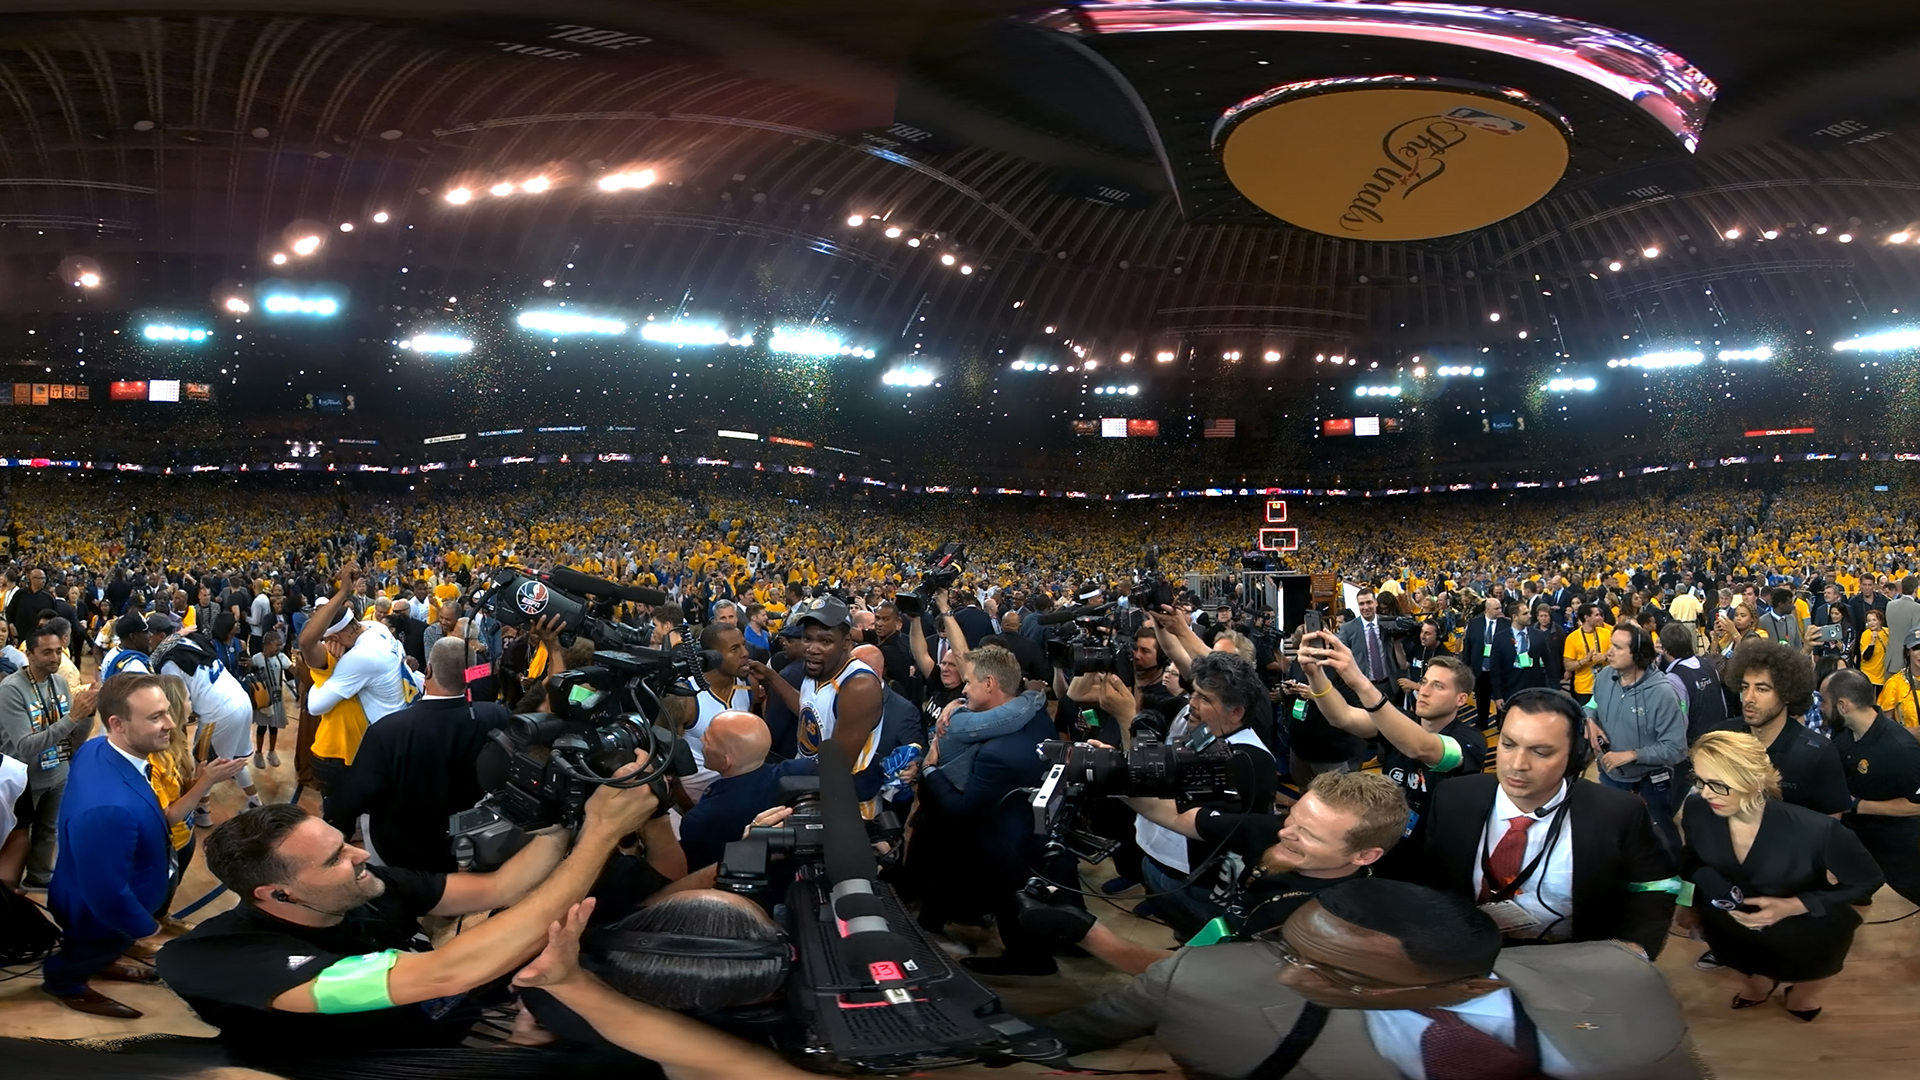 STRENGTH IN NUMBERS: THE STORY OF THE 2017 NBA FINALS -